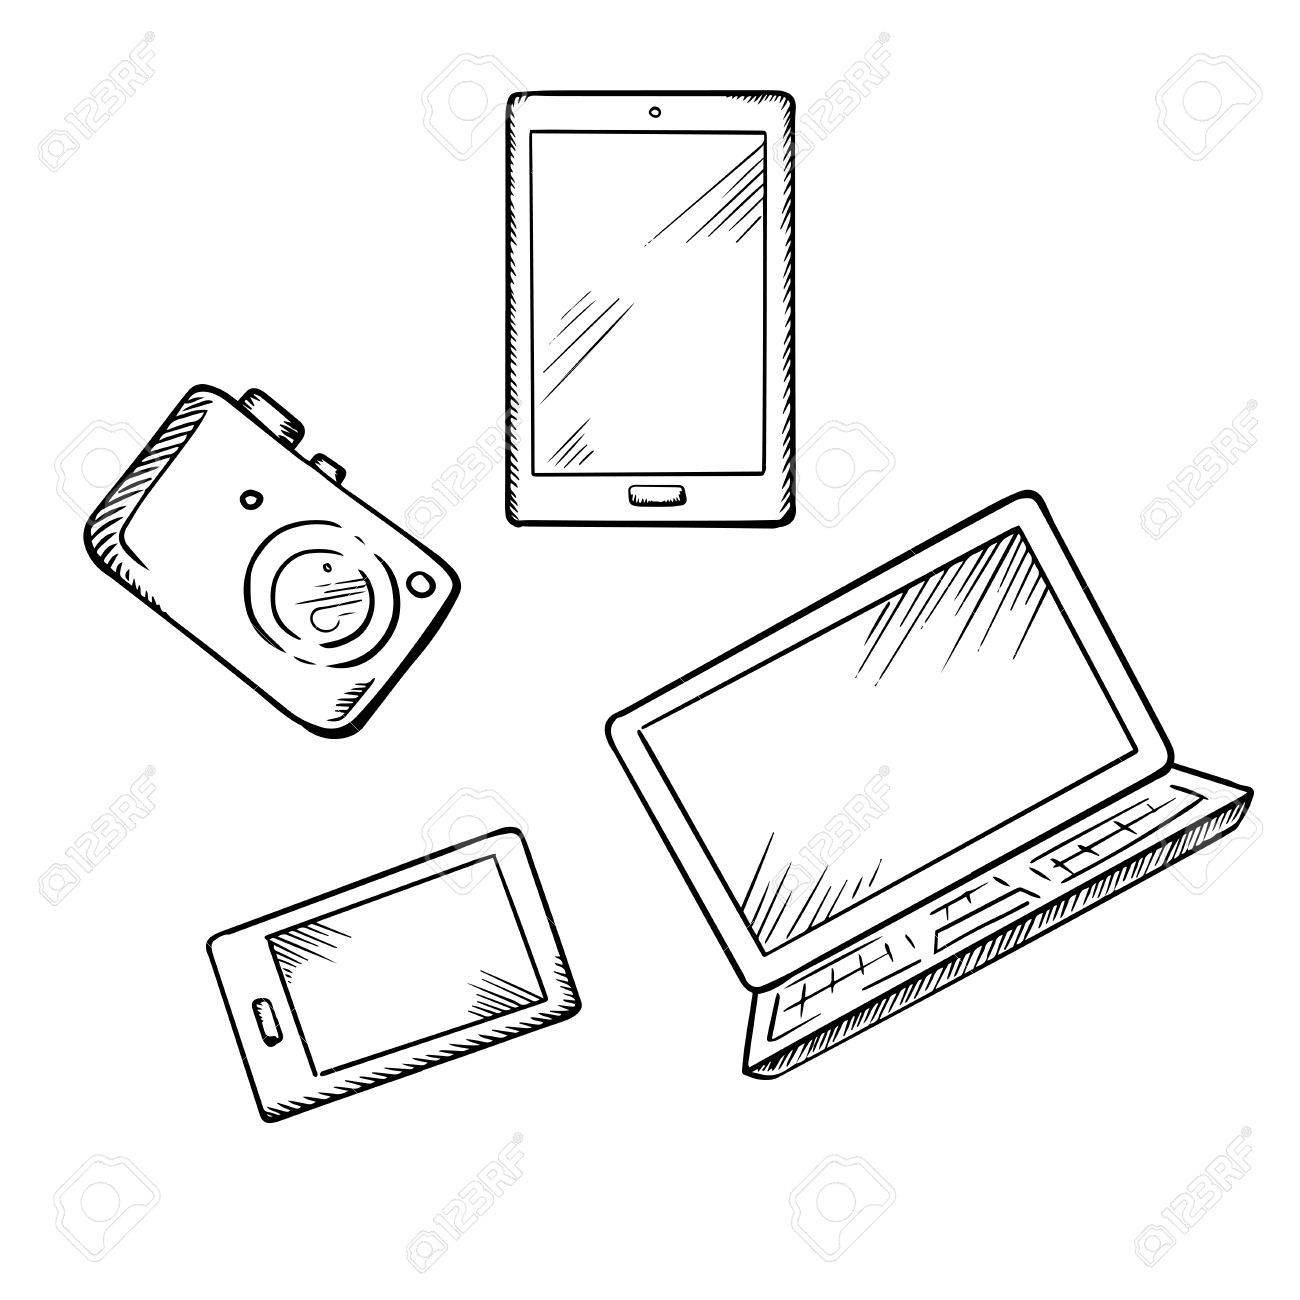 1300x1300 Sketch Of Modern Smartphone, Tablet Pc, Laptop And Digital Photo